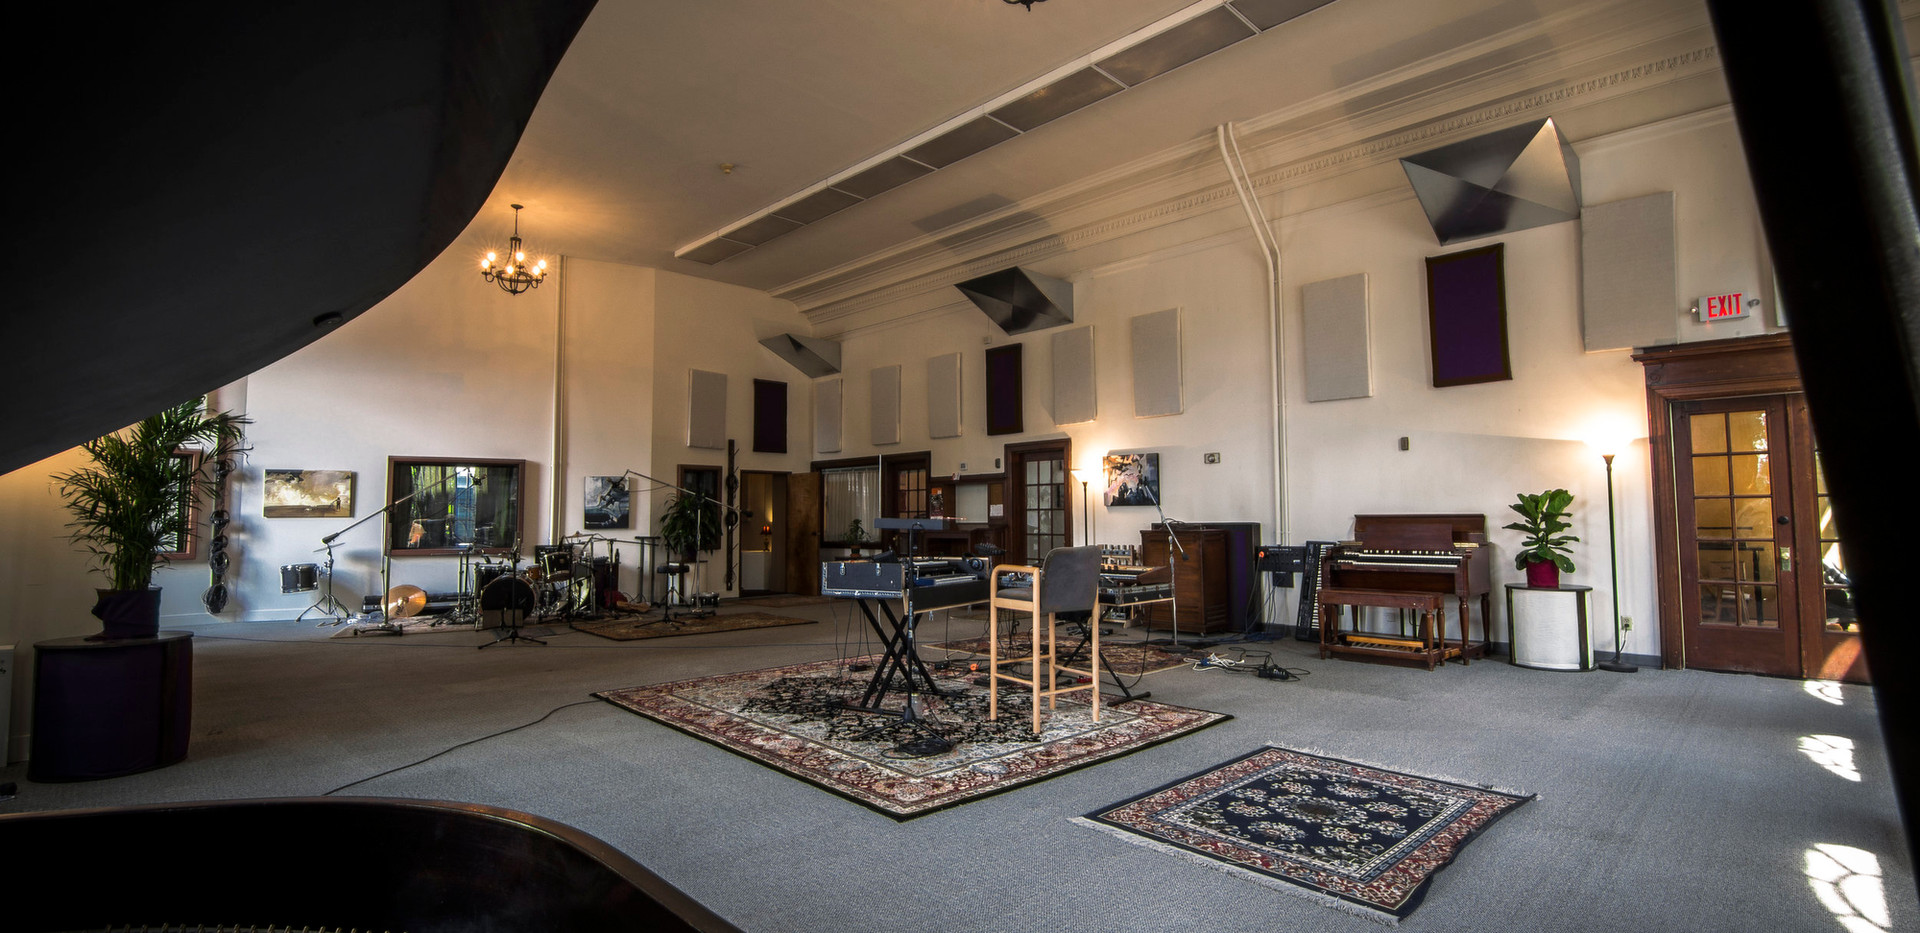 the-hallowed-halls-studio-a-live-room-2.